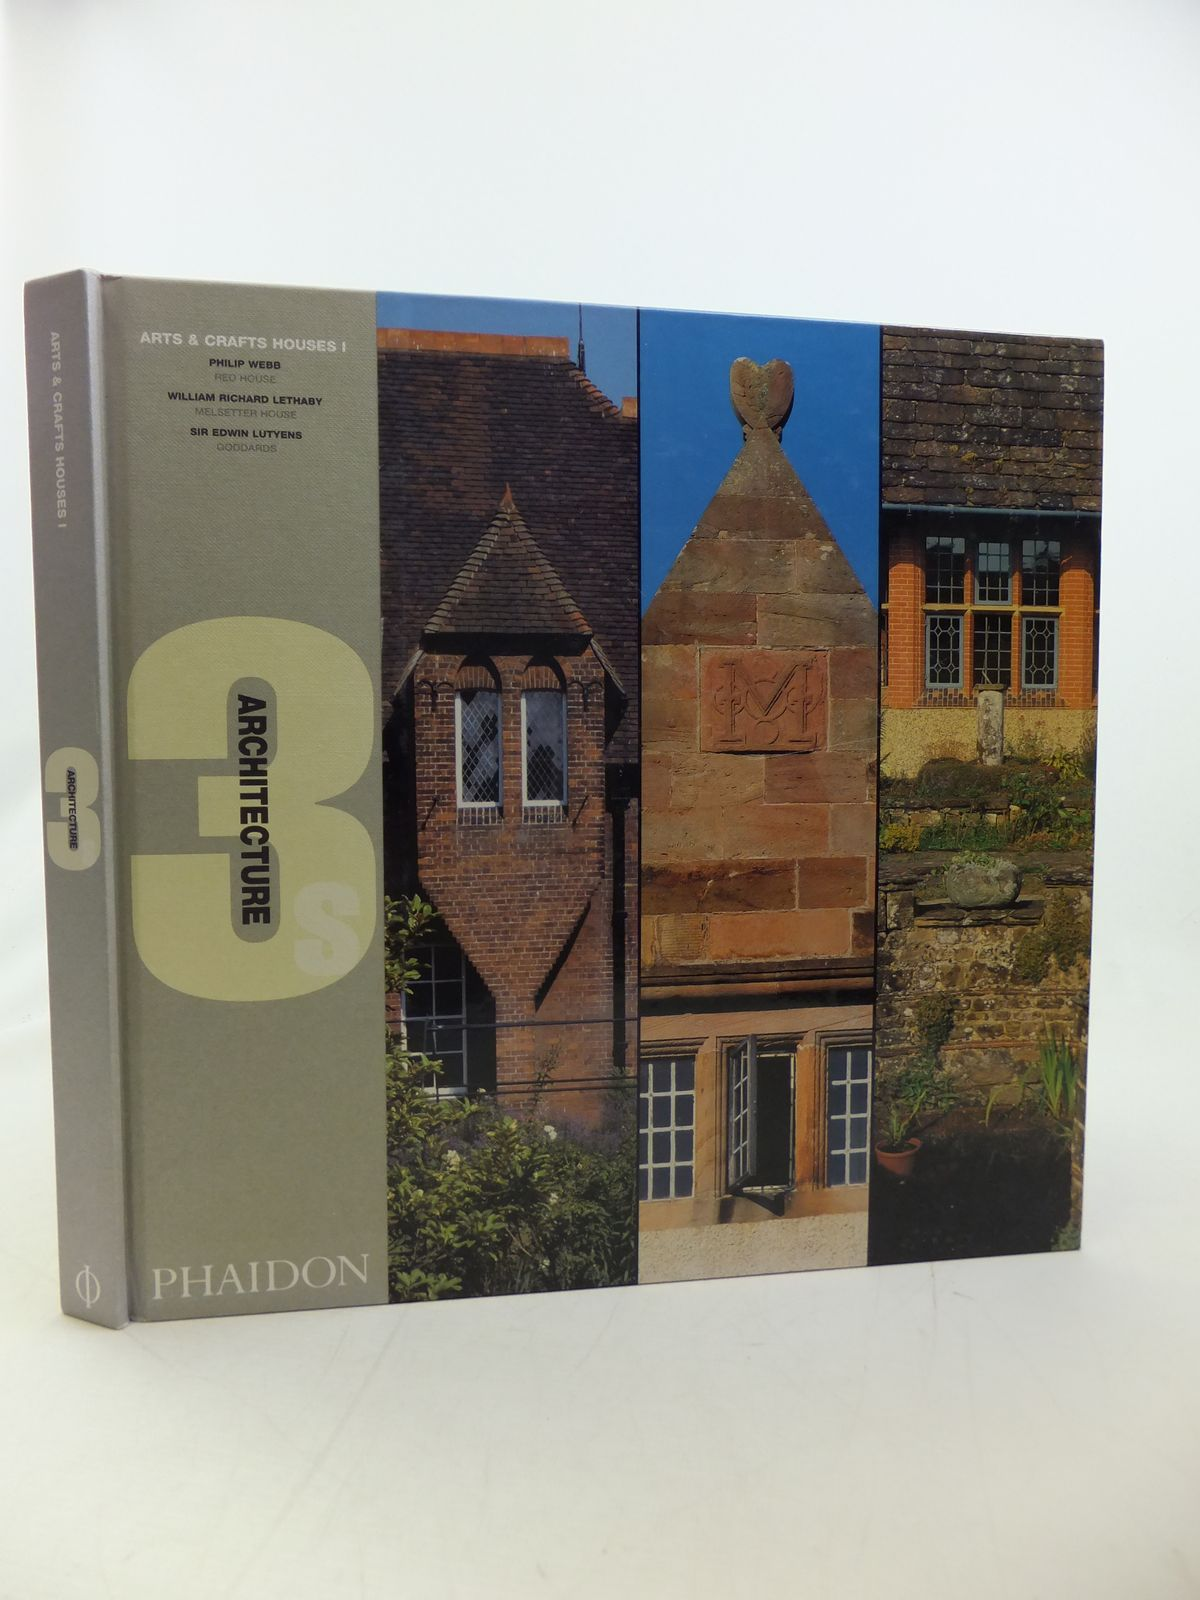 Photo of ARTS & CRAFTS HOUSES I (ARCHITECTURE 3S) written by Dunlop, Beth<br />Hollamby, Edward<br />Garnham, Trevor<br />Edwards, Brian published by Phaidon Press Limited (STOCK CODE: 2114050)  for sale by Stella & Rose's Books